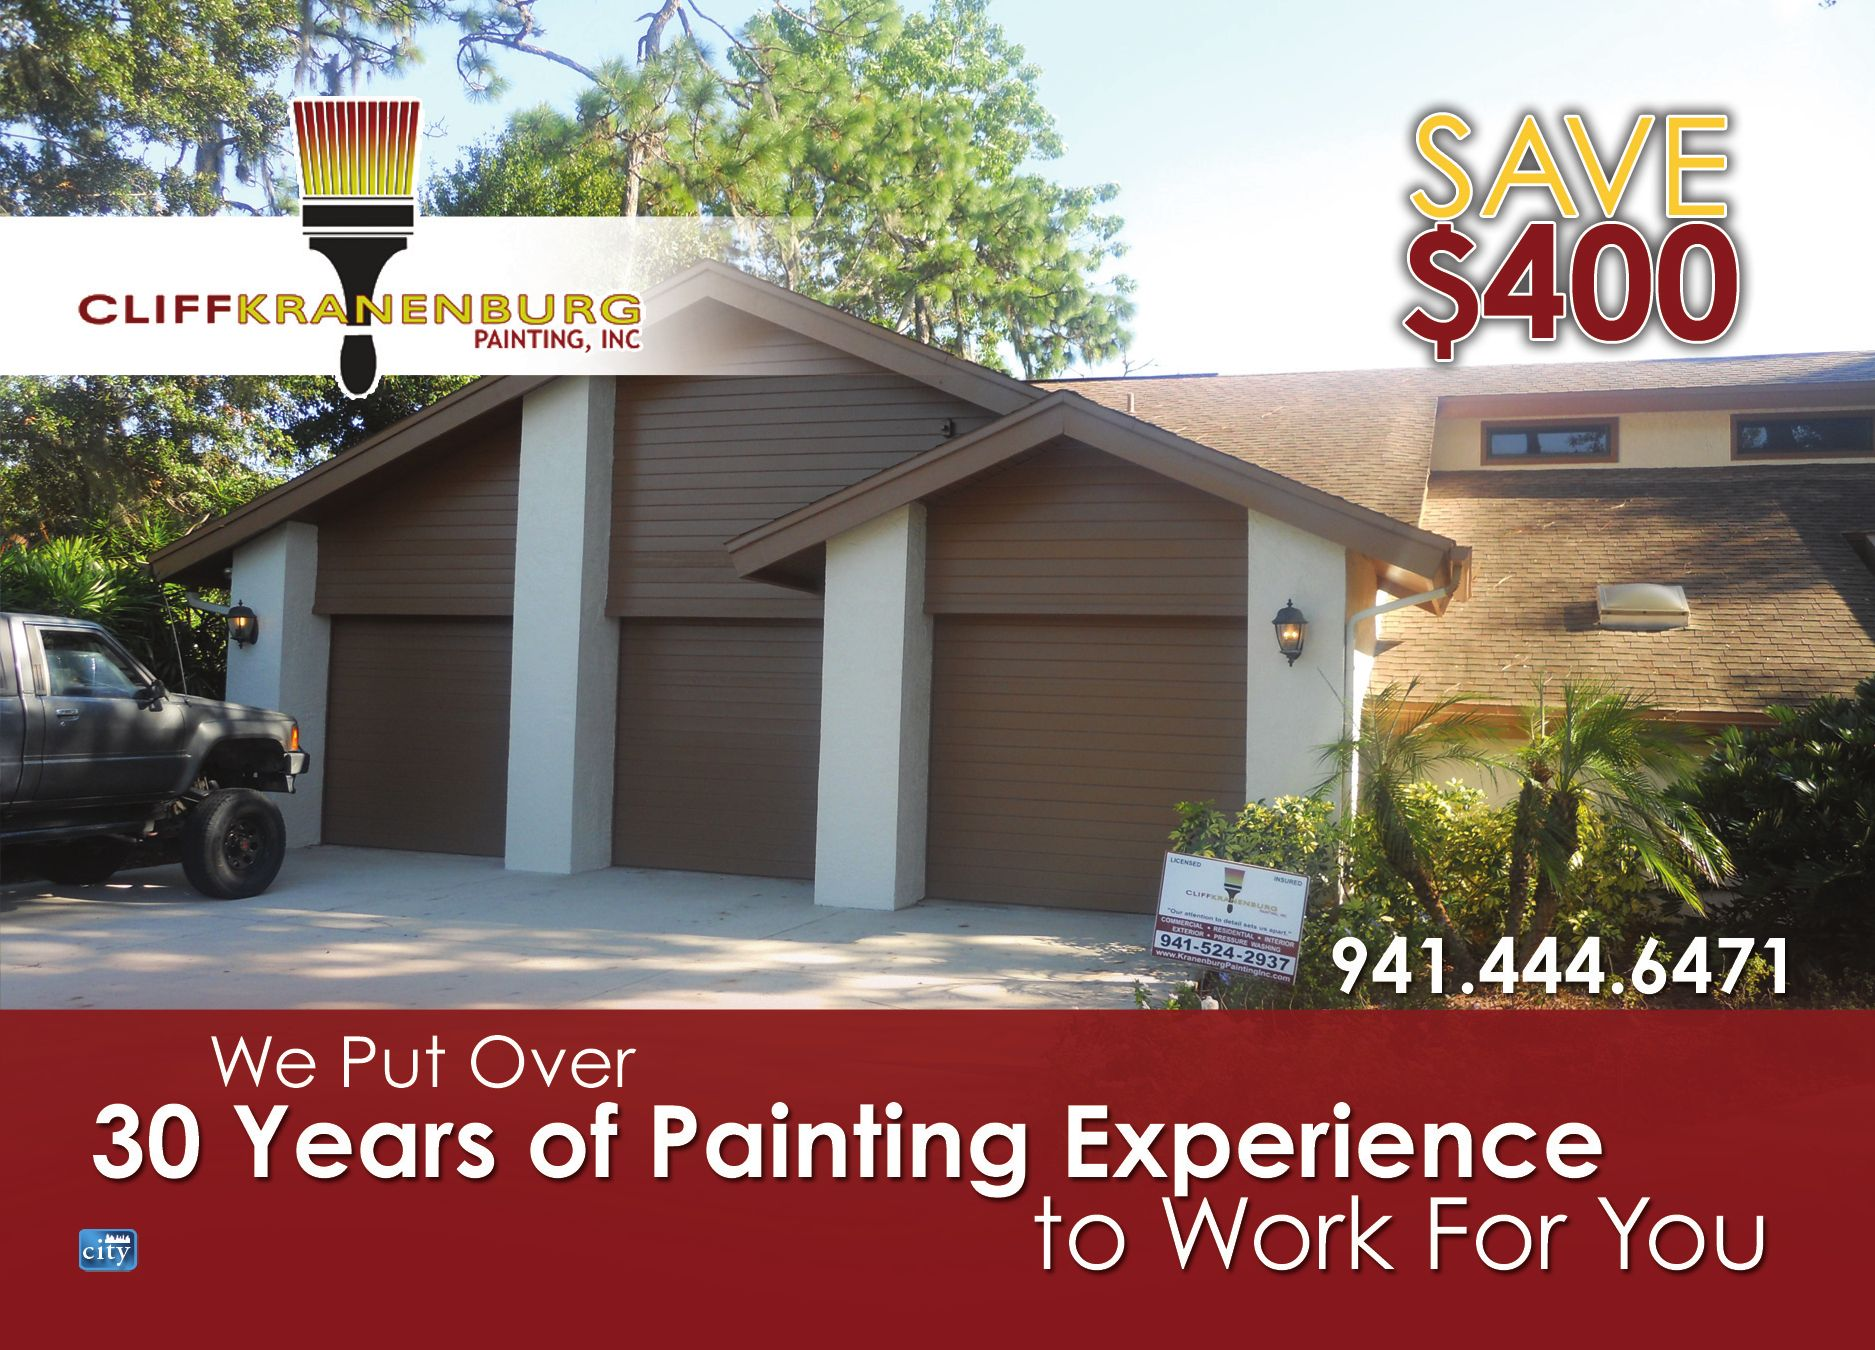 Cliff Kranenburg Painting, Inc.